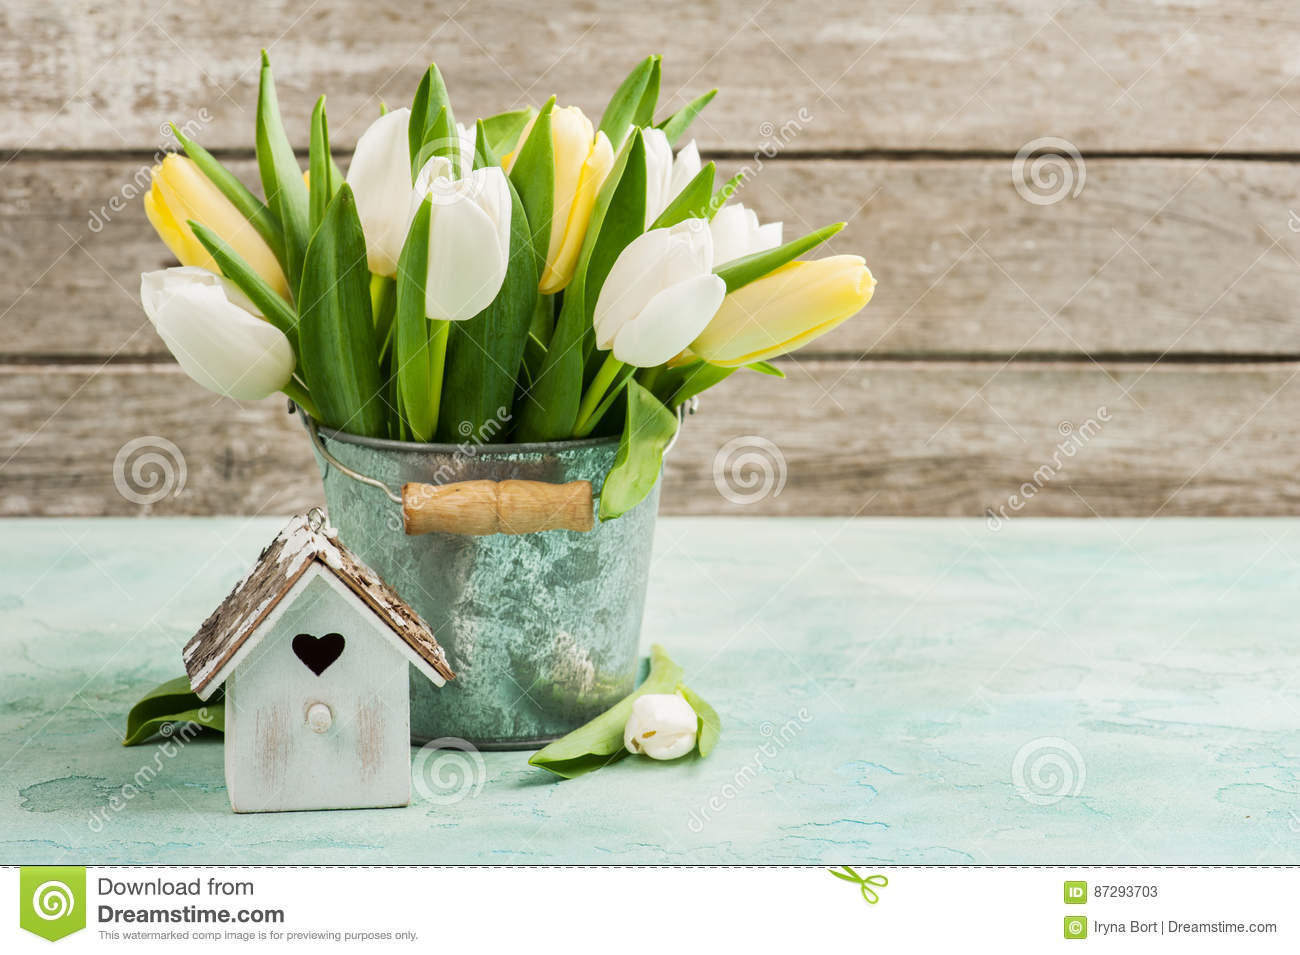 Tulips, bird house on concrete background